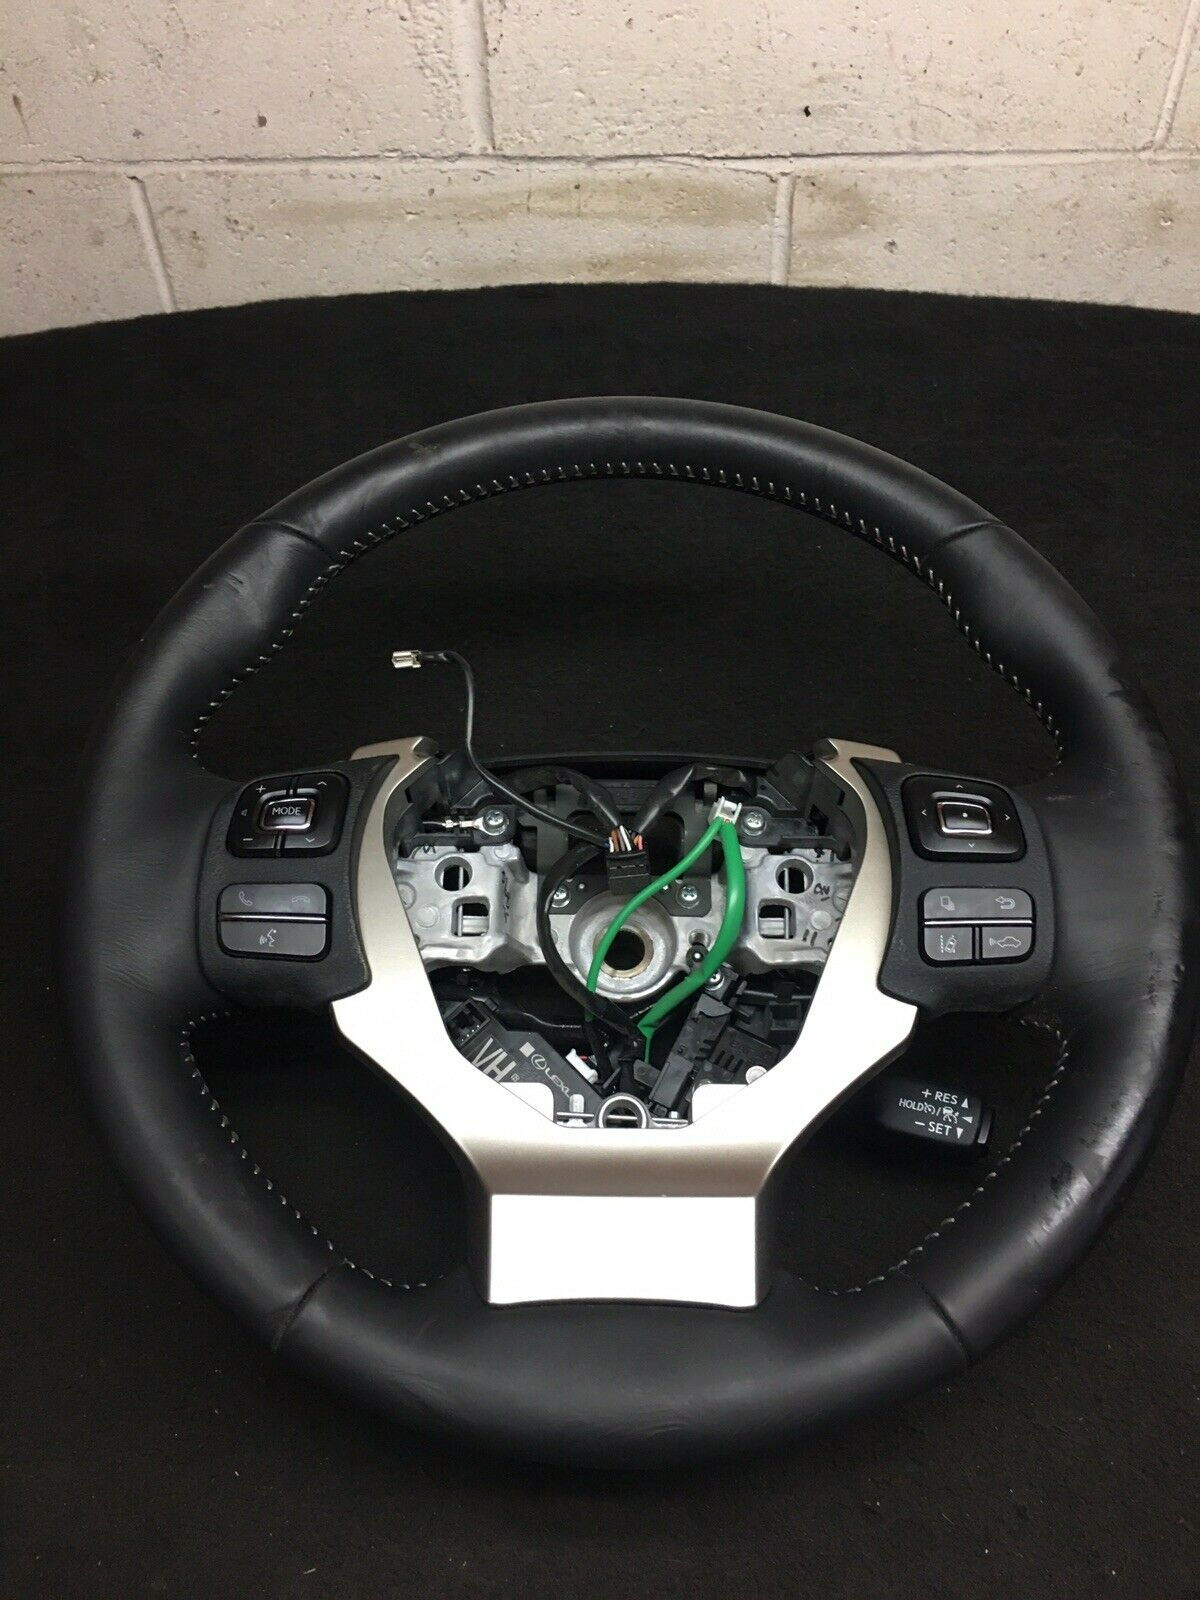 LEXUS IS300 2015-2017 Black Leather Steering Wheel W/ Control Original OEM